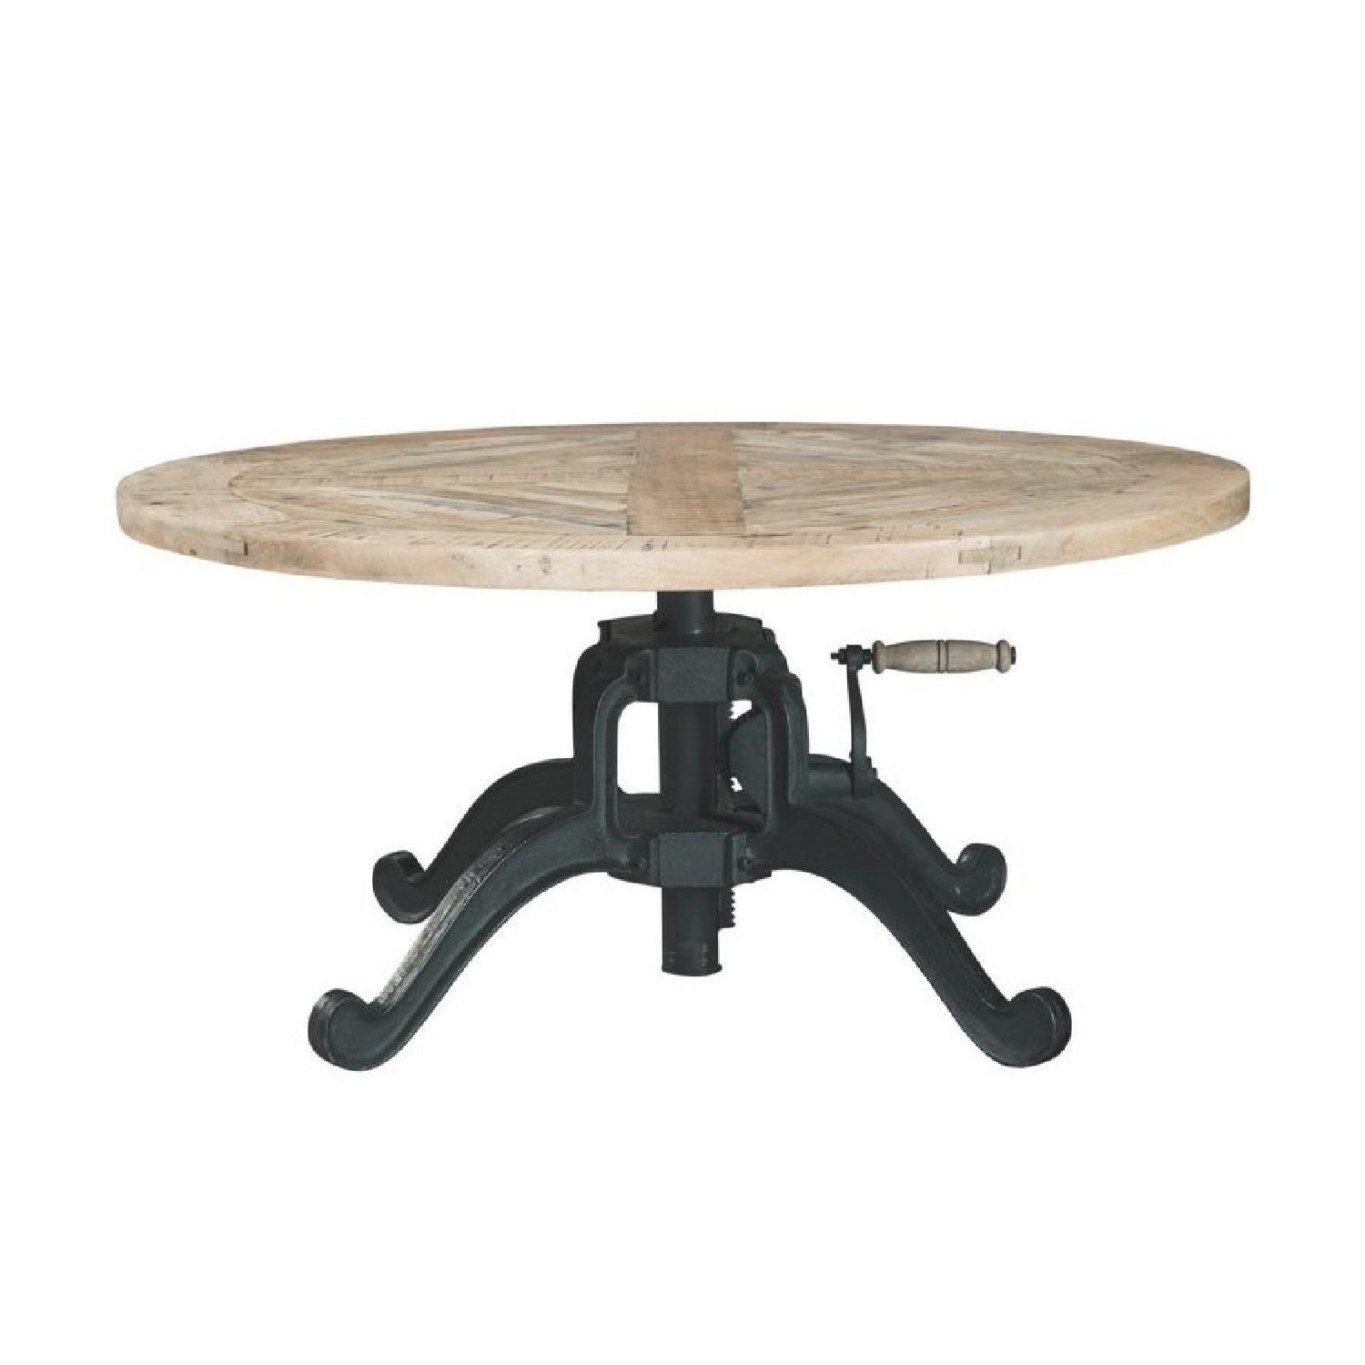 Height Adjustable Round Coffee Table W/ Crank Handle - Aptdeco regarding Adjustable Height Coffee Table